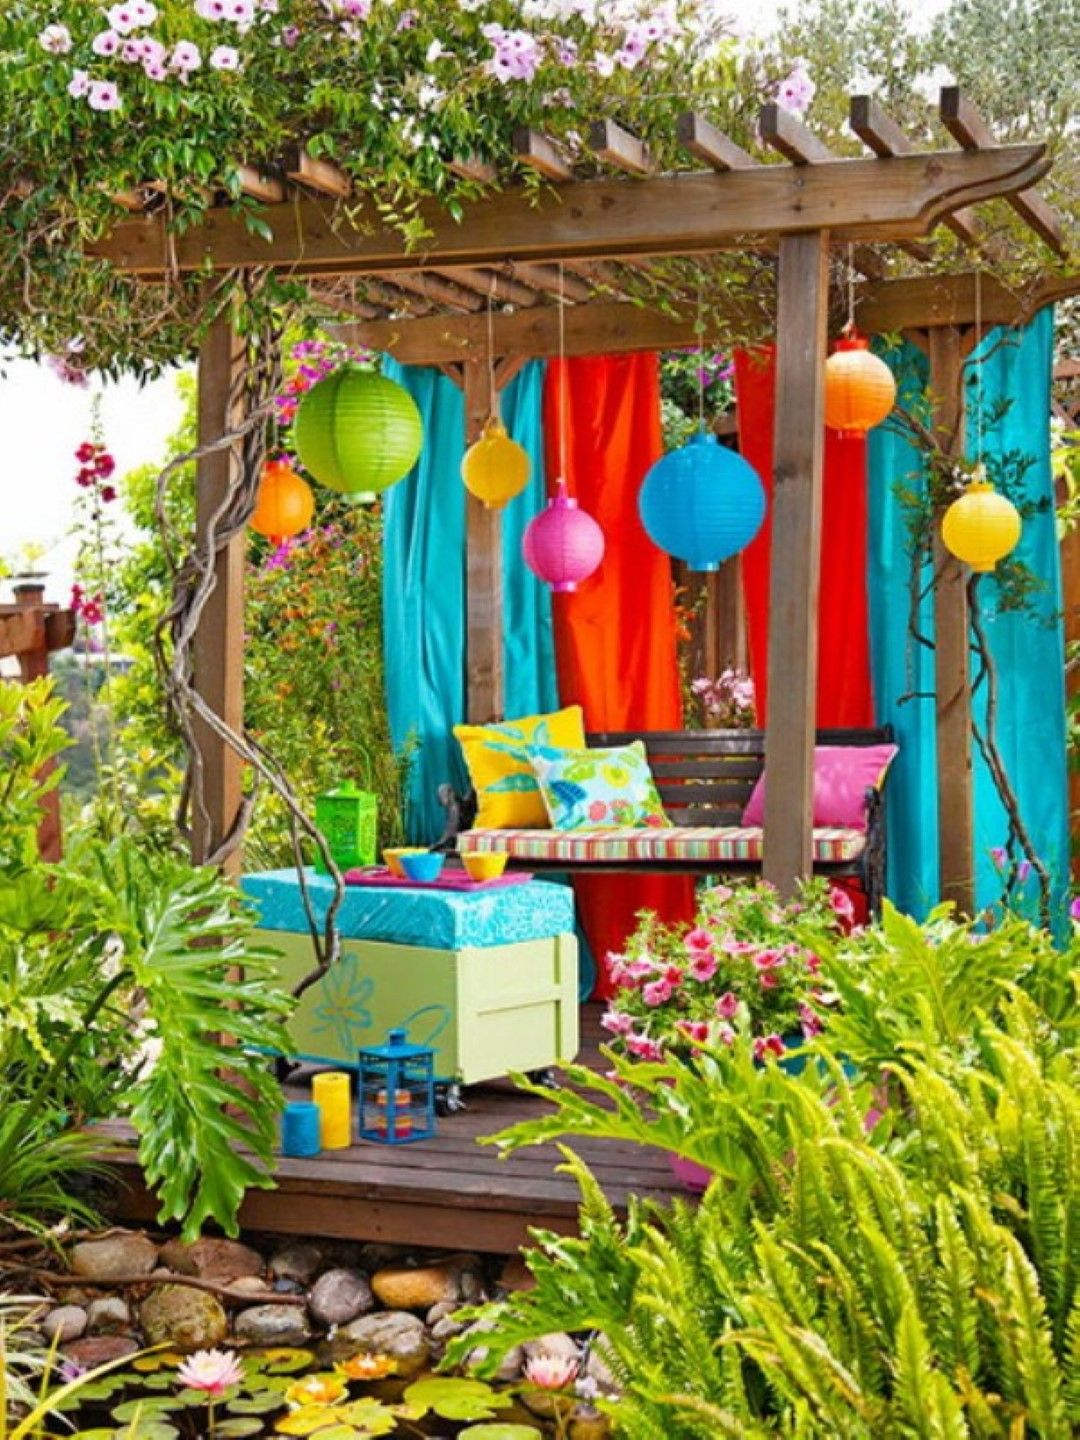 Fun Garden Ideas designer fun garden Home Design Bohemian Small Pergola Design For Fun Garden Decor Ideas With Adorable Color Lanterns